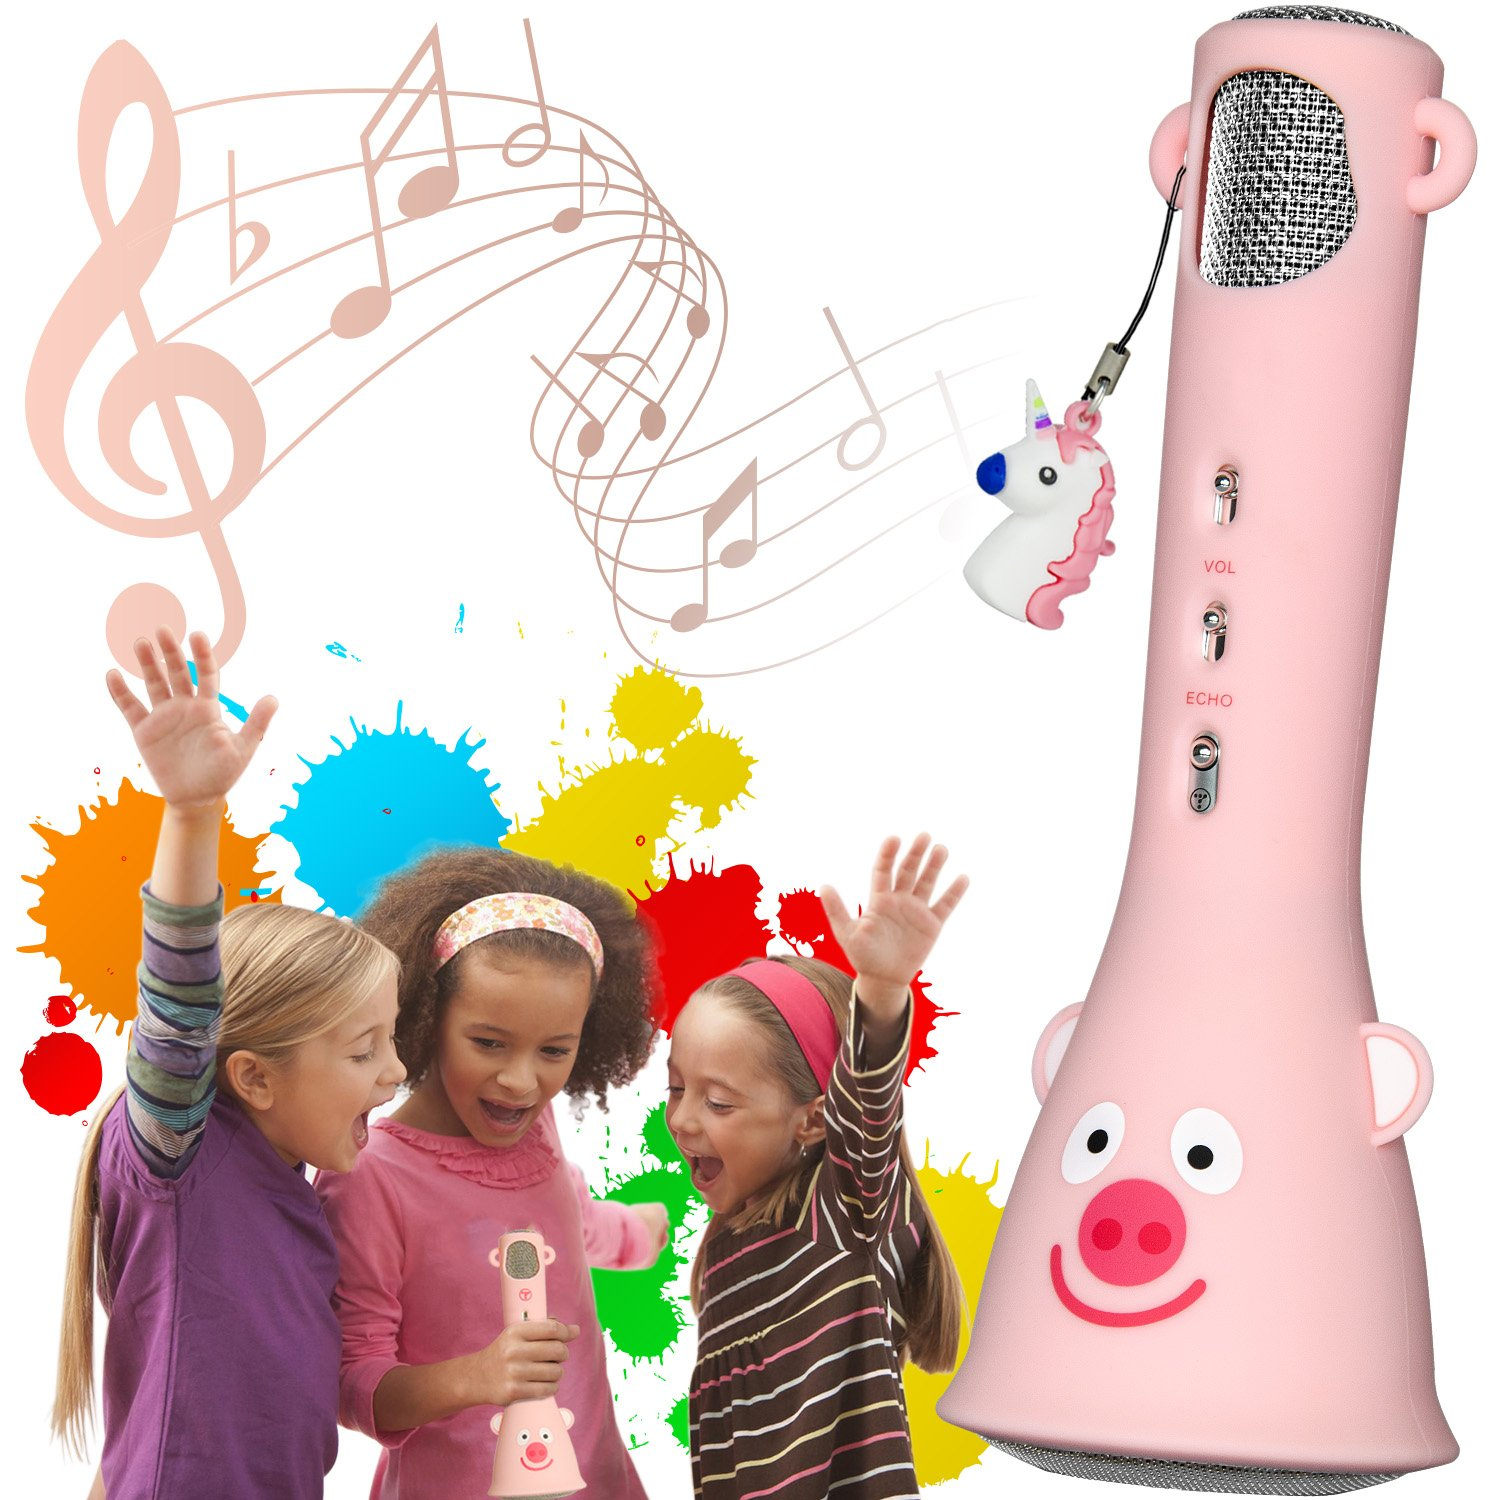 Kids Karaoke Microphone Portable Handheld Wireless Bluetooth karaoke Mic Voice Mixer for Home KTV Outdoor Party Birthday Speaker Machine for iPhone/Android/iPad/PC and Smartphone-Gift Packing(Pink)